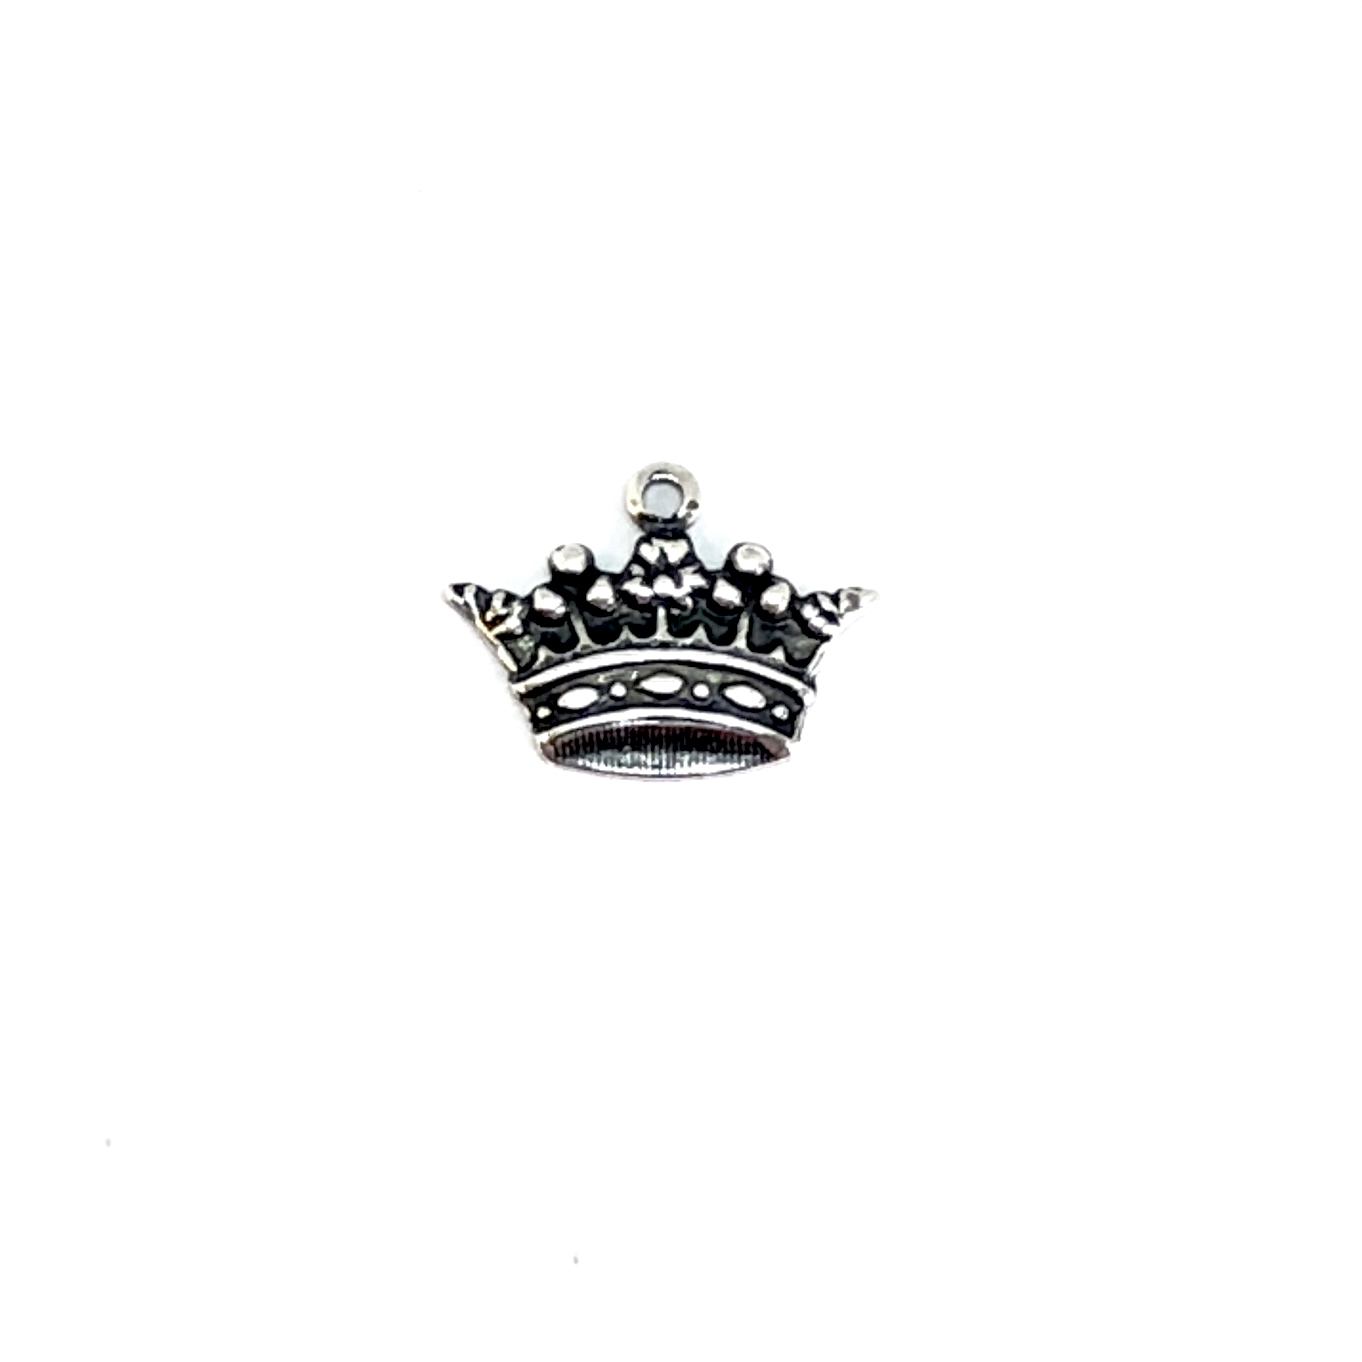 Brass Crown Charm, Silverware Silver Plate, 03247, charm bracelets, jewelry making supplies, vintage jewelry supplies, crown charms, antique silver, bracelet making supplies, US made, Bsue Boutiques, nickel free